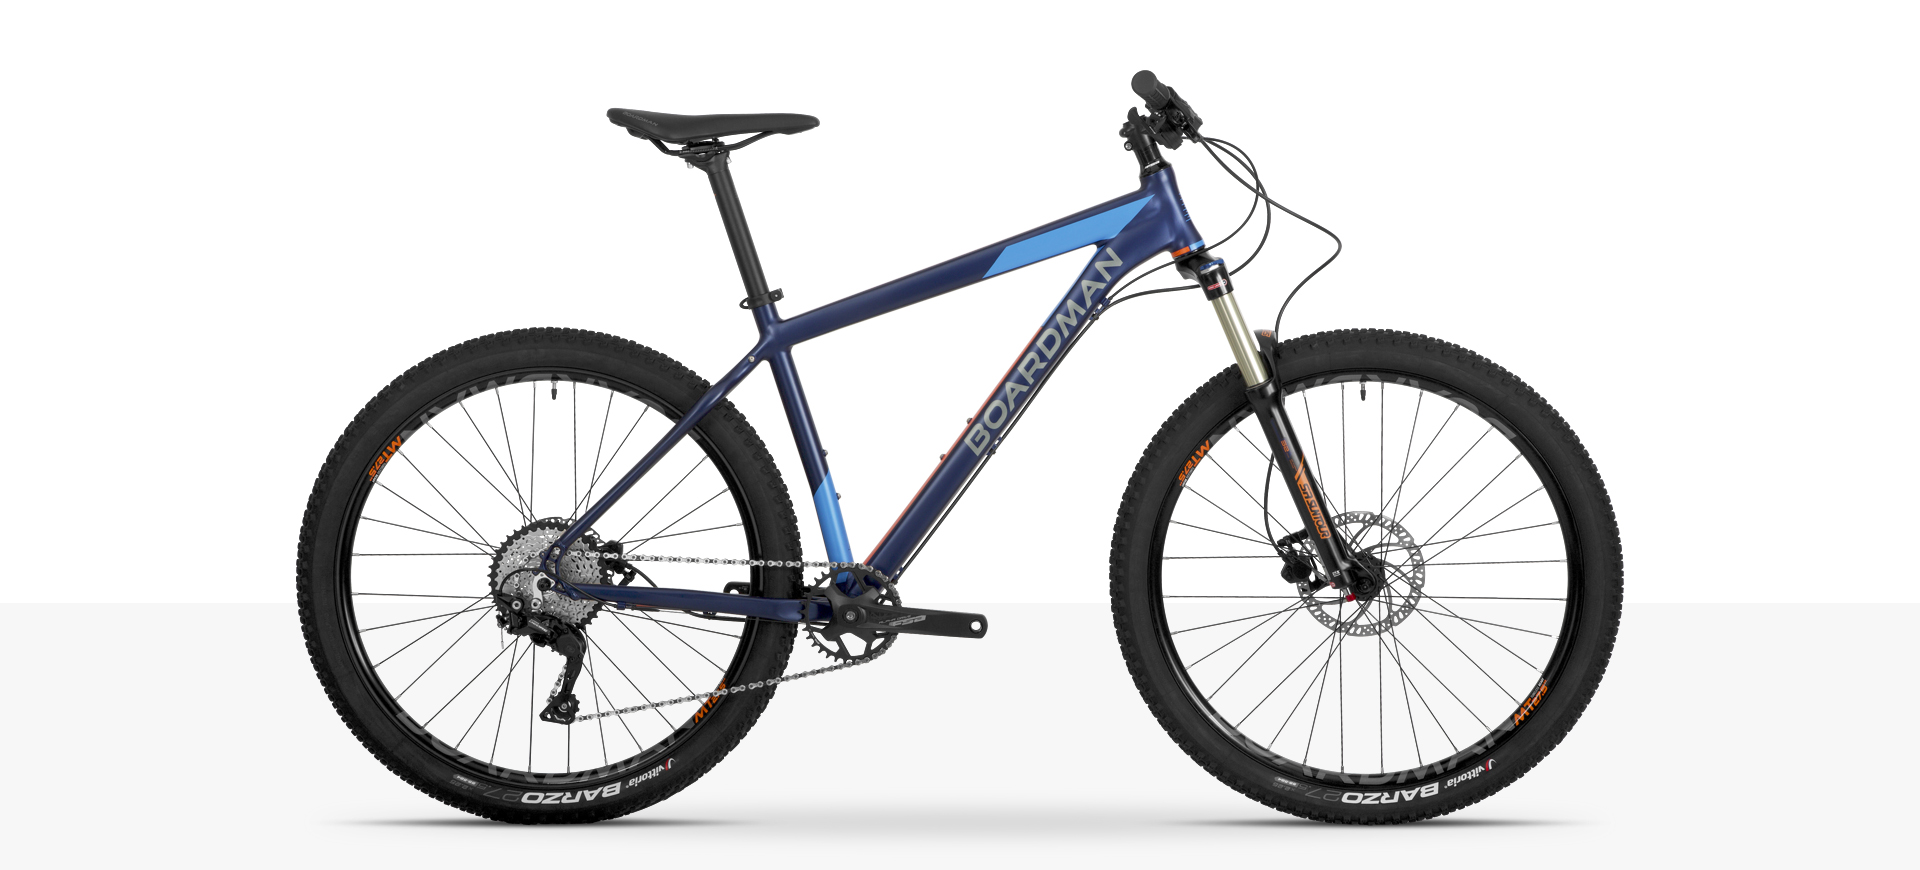 Boardman MHT 8.6 Hardtail Mountain Bike in Blue and Orange